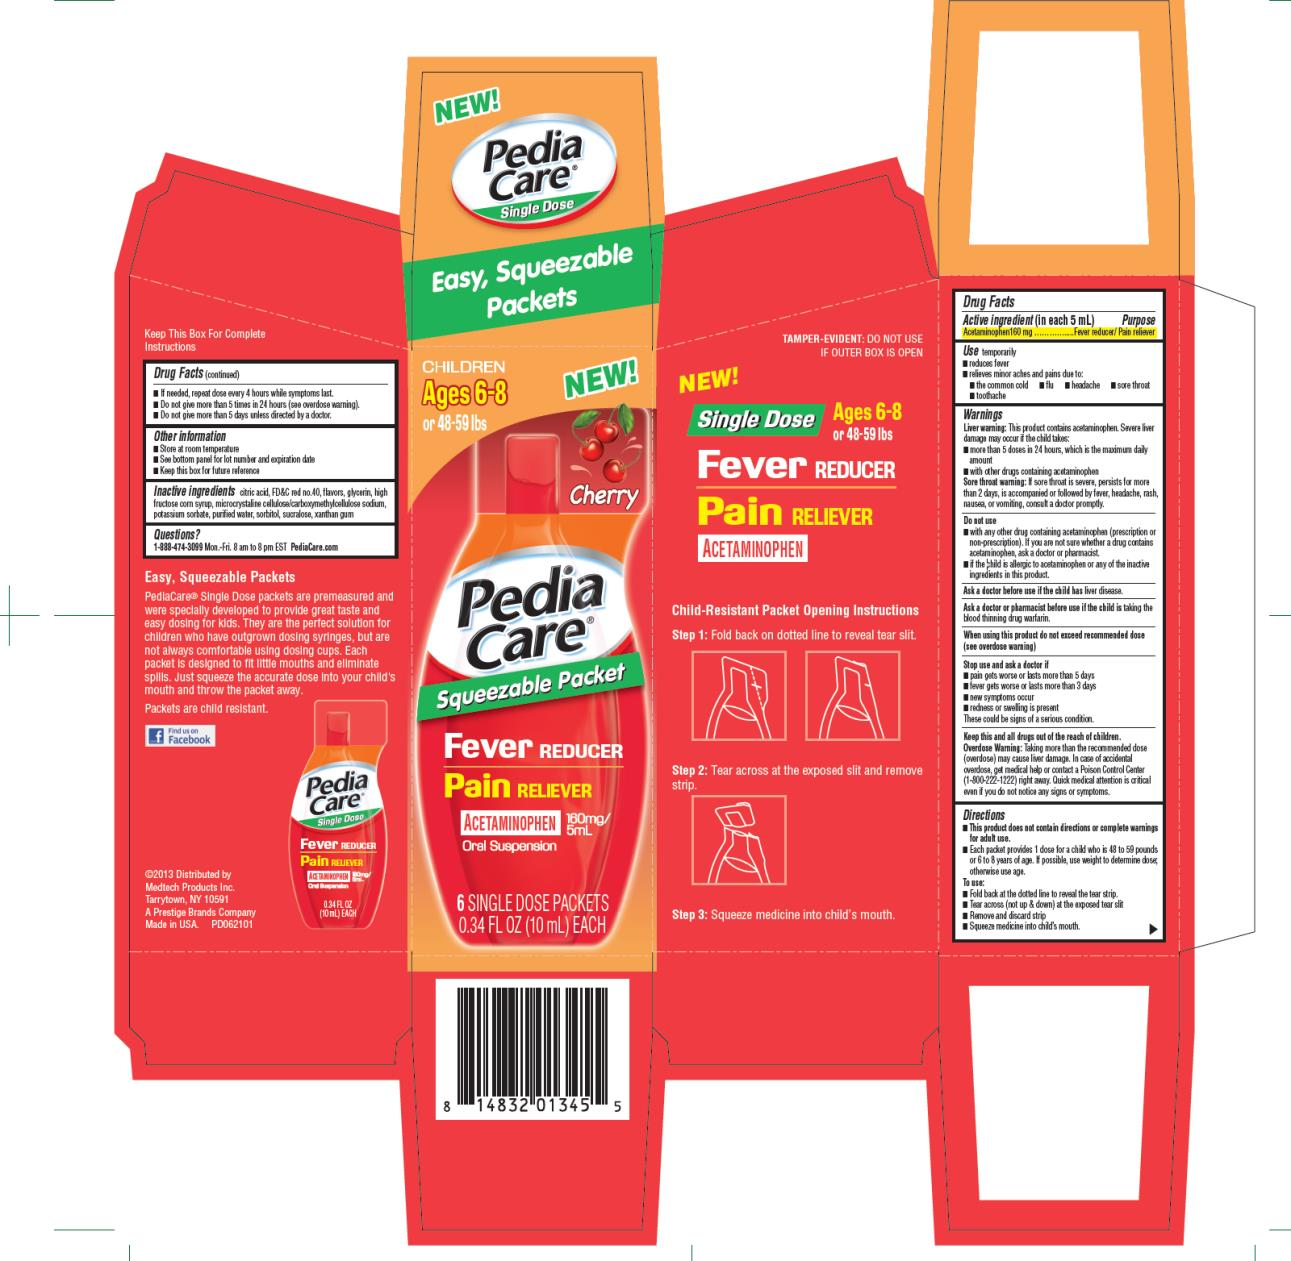 Children Ages 6-8 or 48-59 lbs PediaCare Squeezable Packet Fever Reducer Pain Reliever Acetaminophen  160mg/5mL Oral Suspension 6 Single Dose Packets 0.34 FL OZ (10 mL) EACH